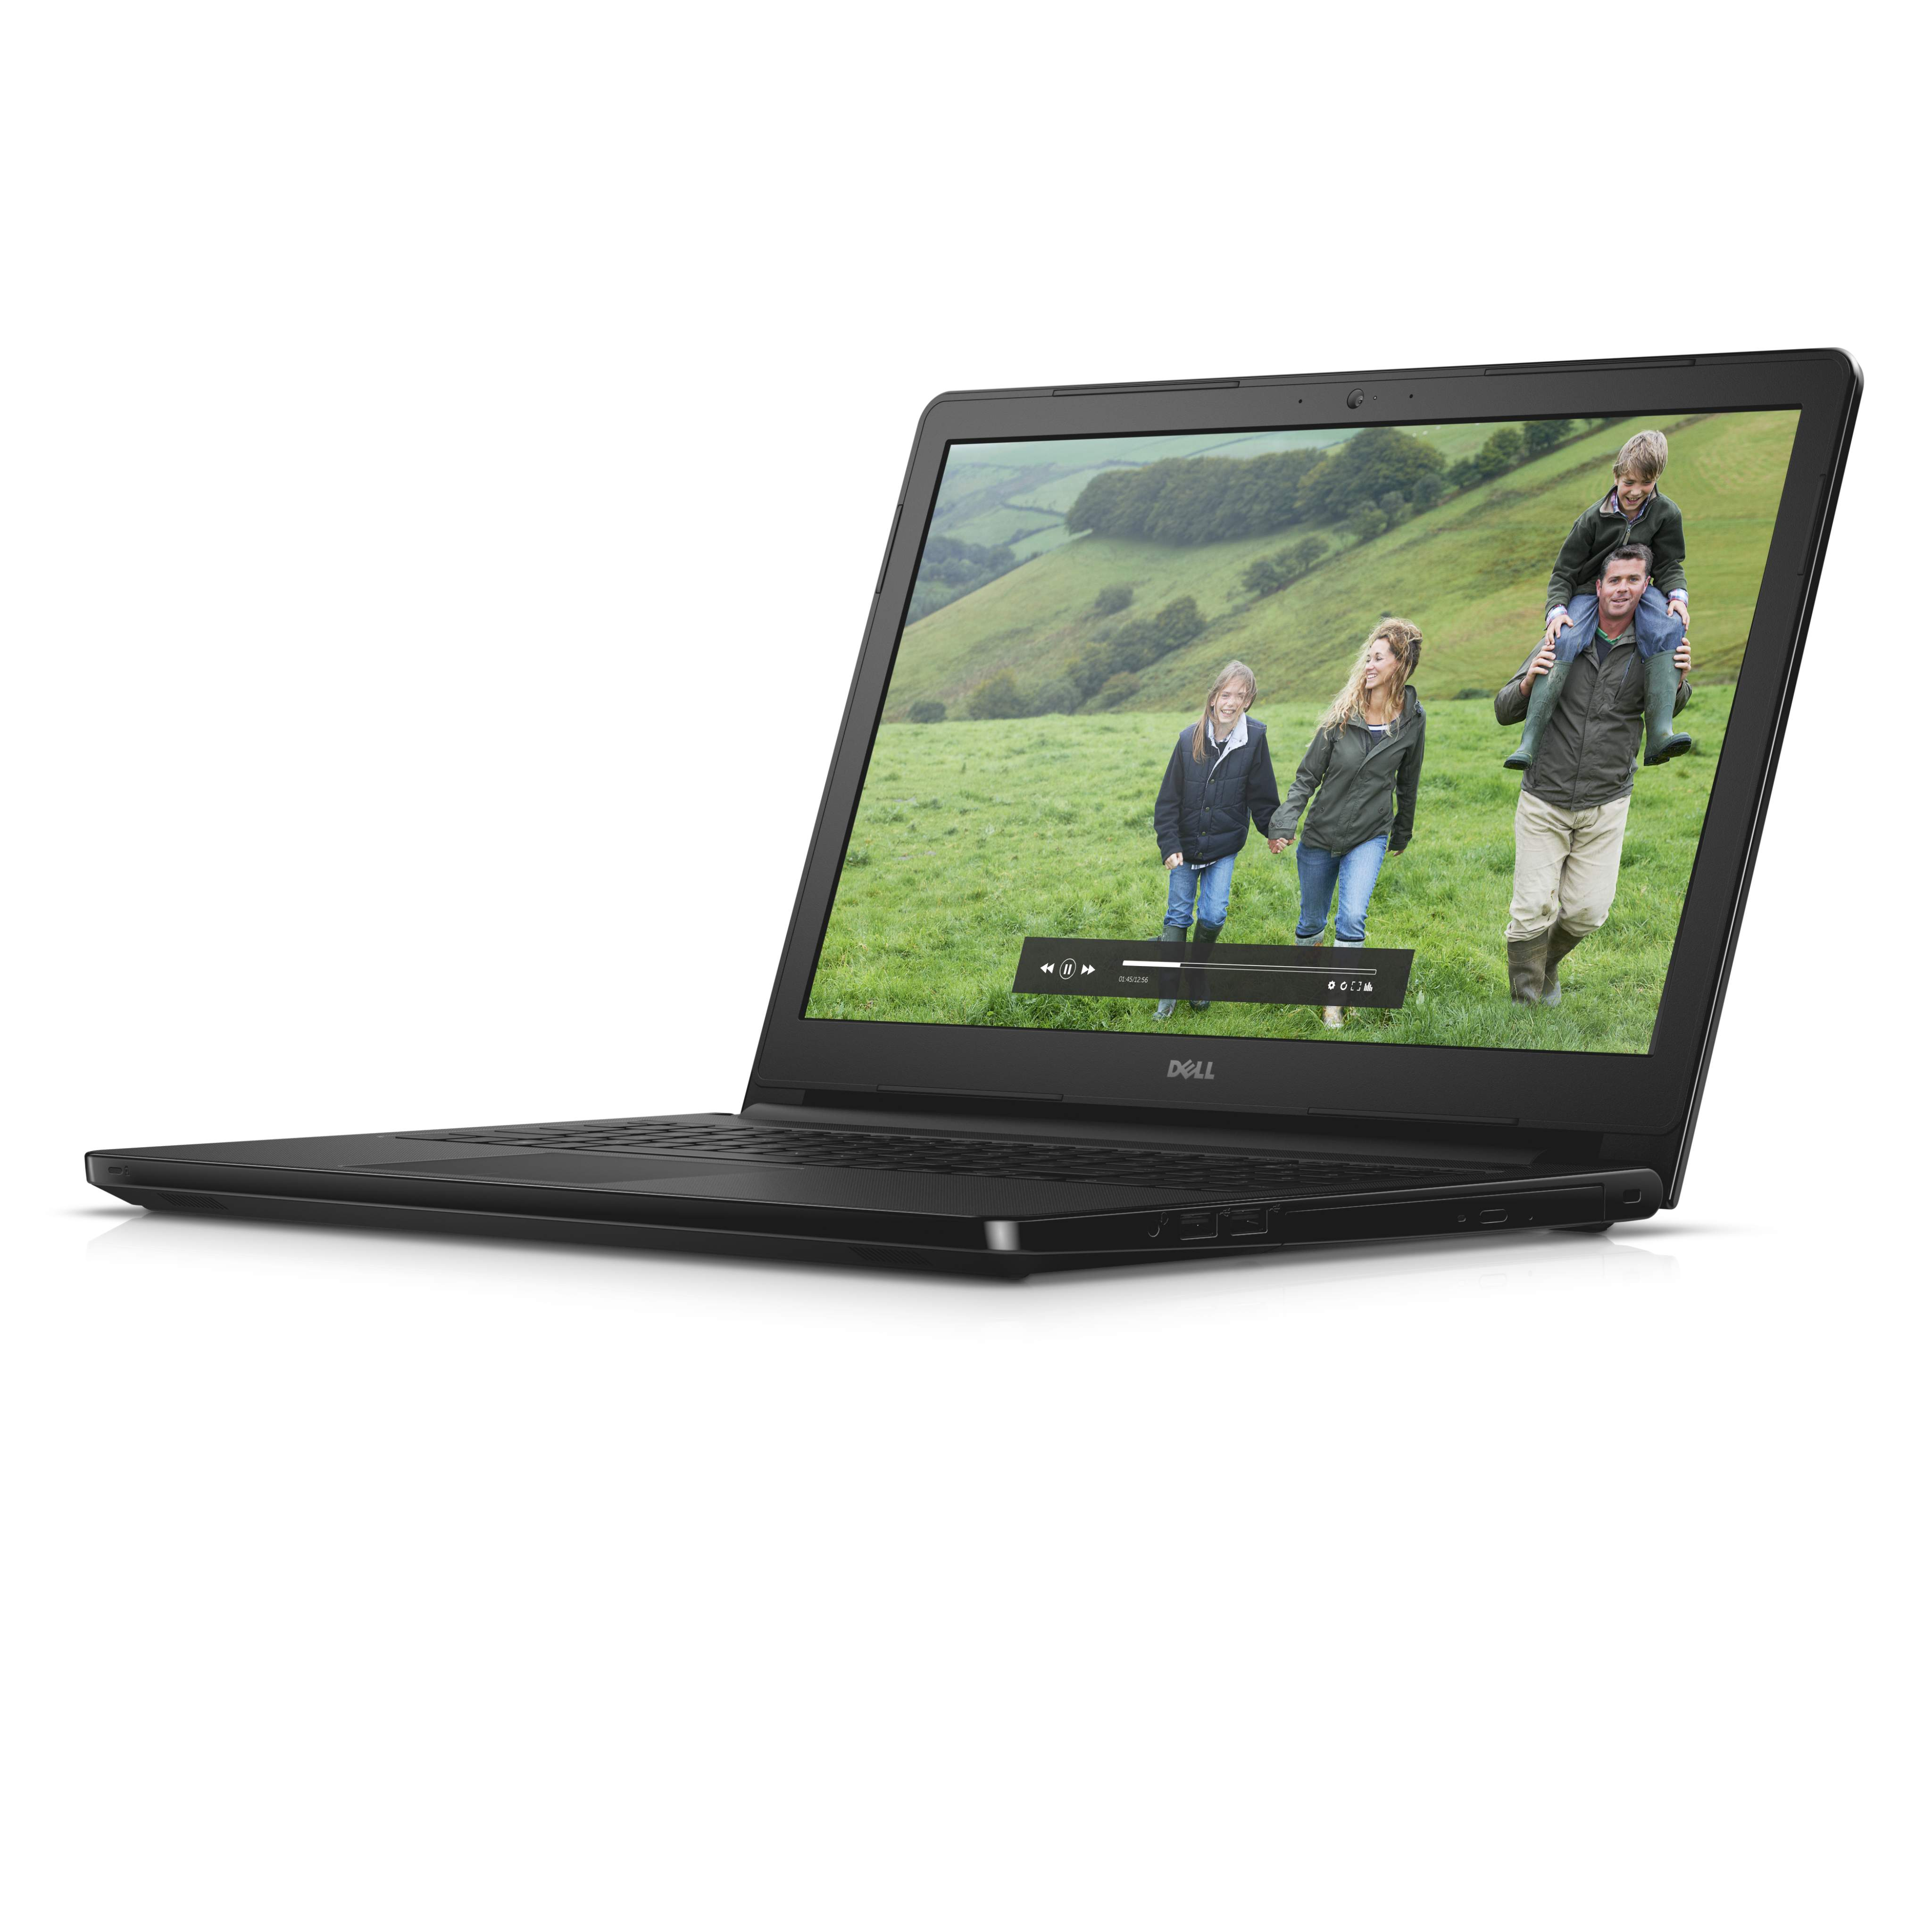 Dell Inspiron 15 5000 Series (Model 5558) Non-Touch 15-inch notebook computer, codename Tulip 15, in Black Gloss with a Broadwell (BDW) processor.